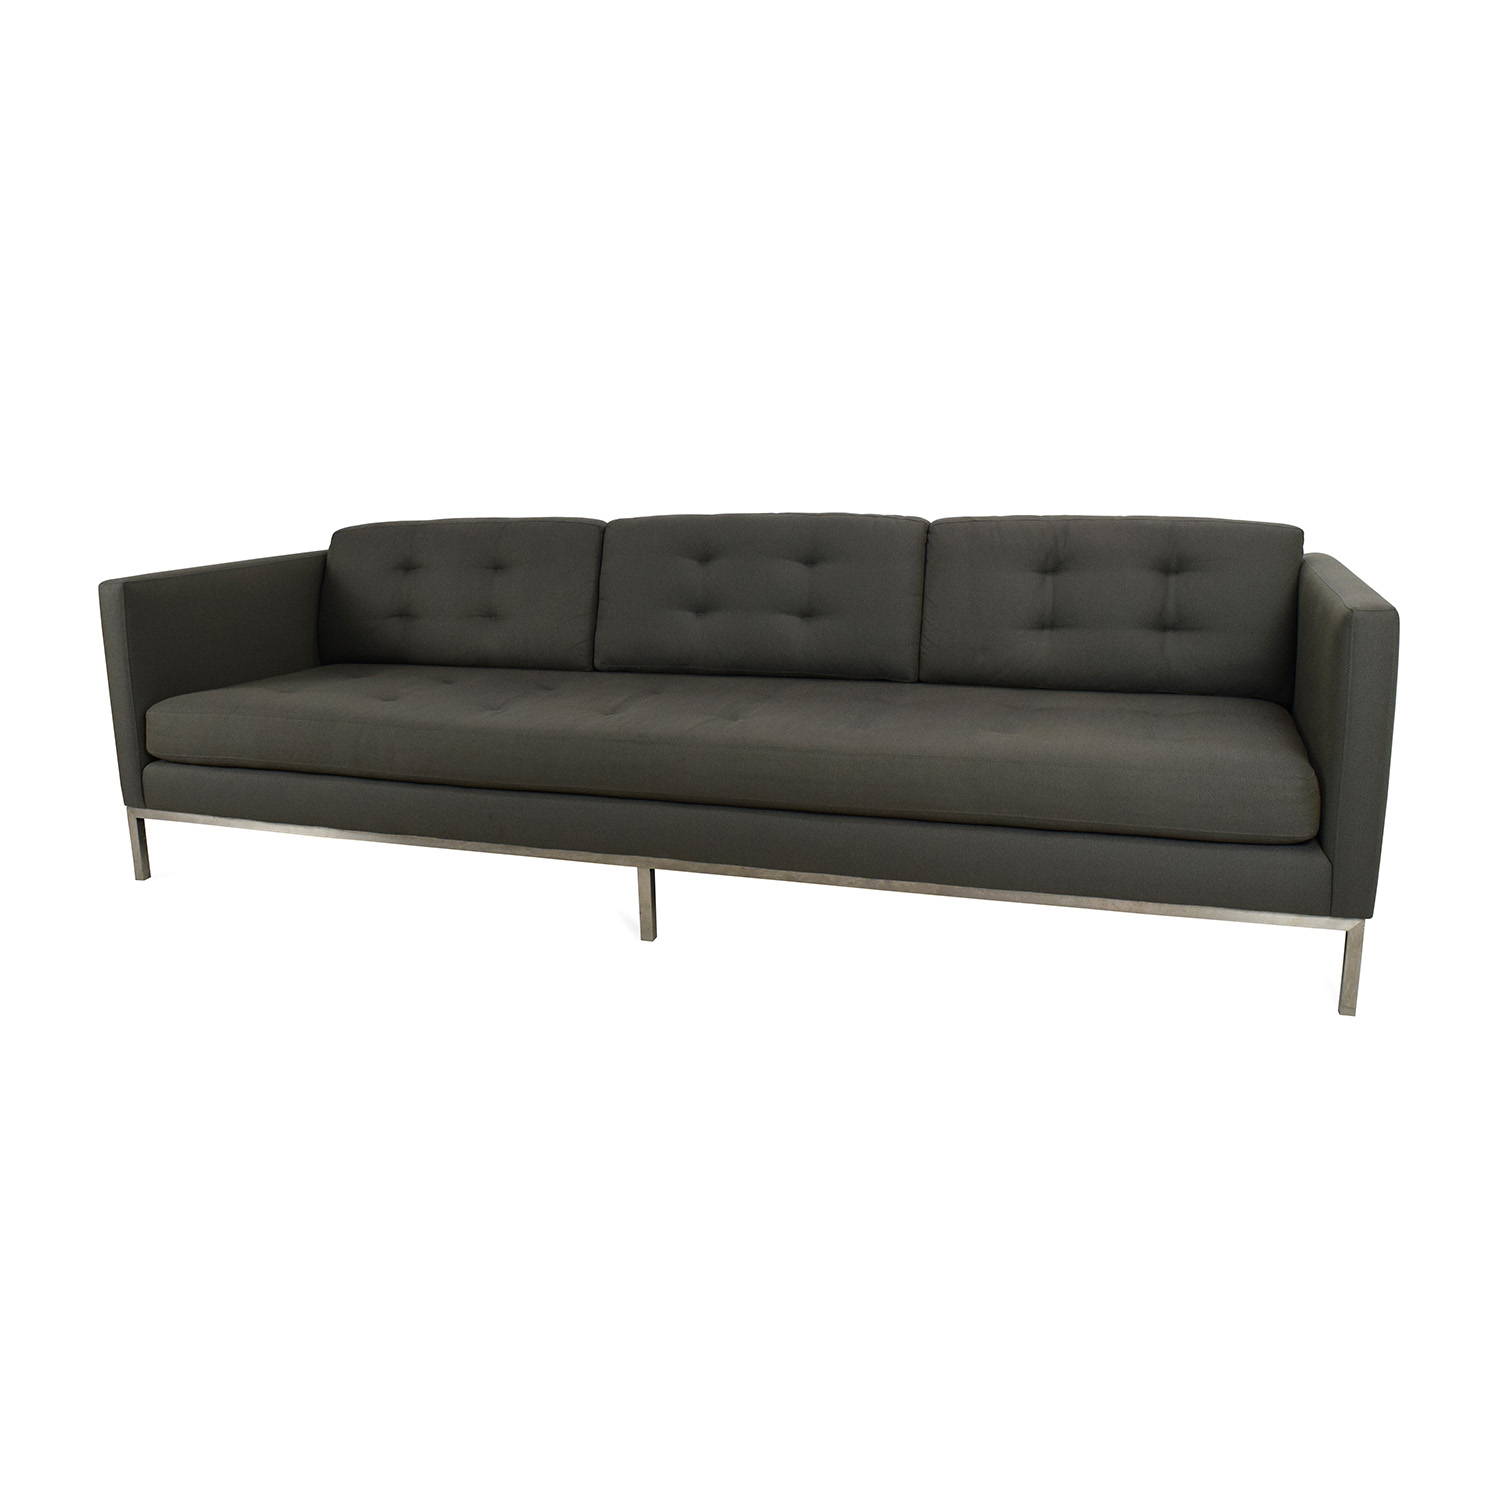 Room And Board Room & Board Sabine Sofa / Sofas